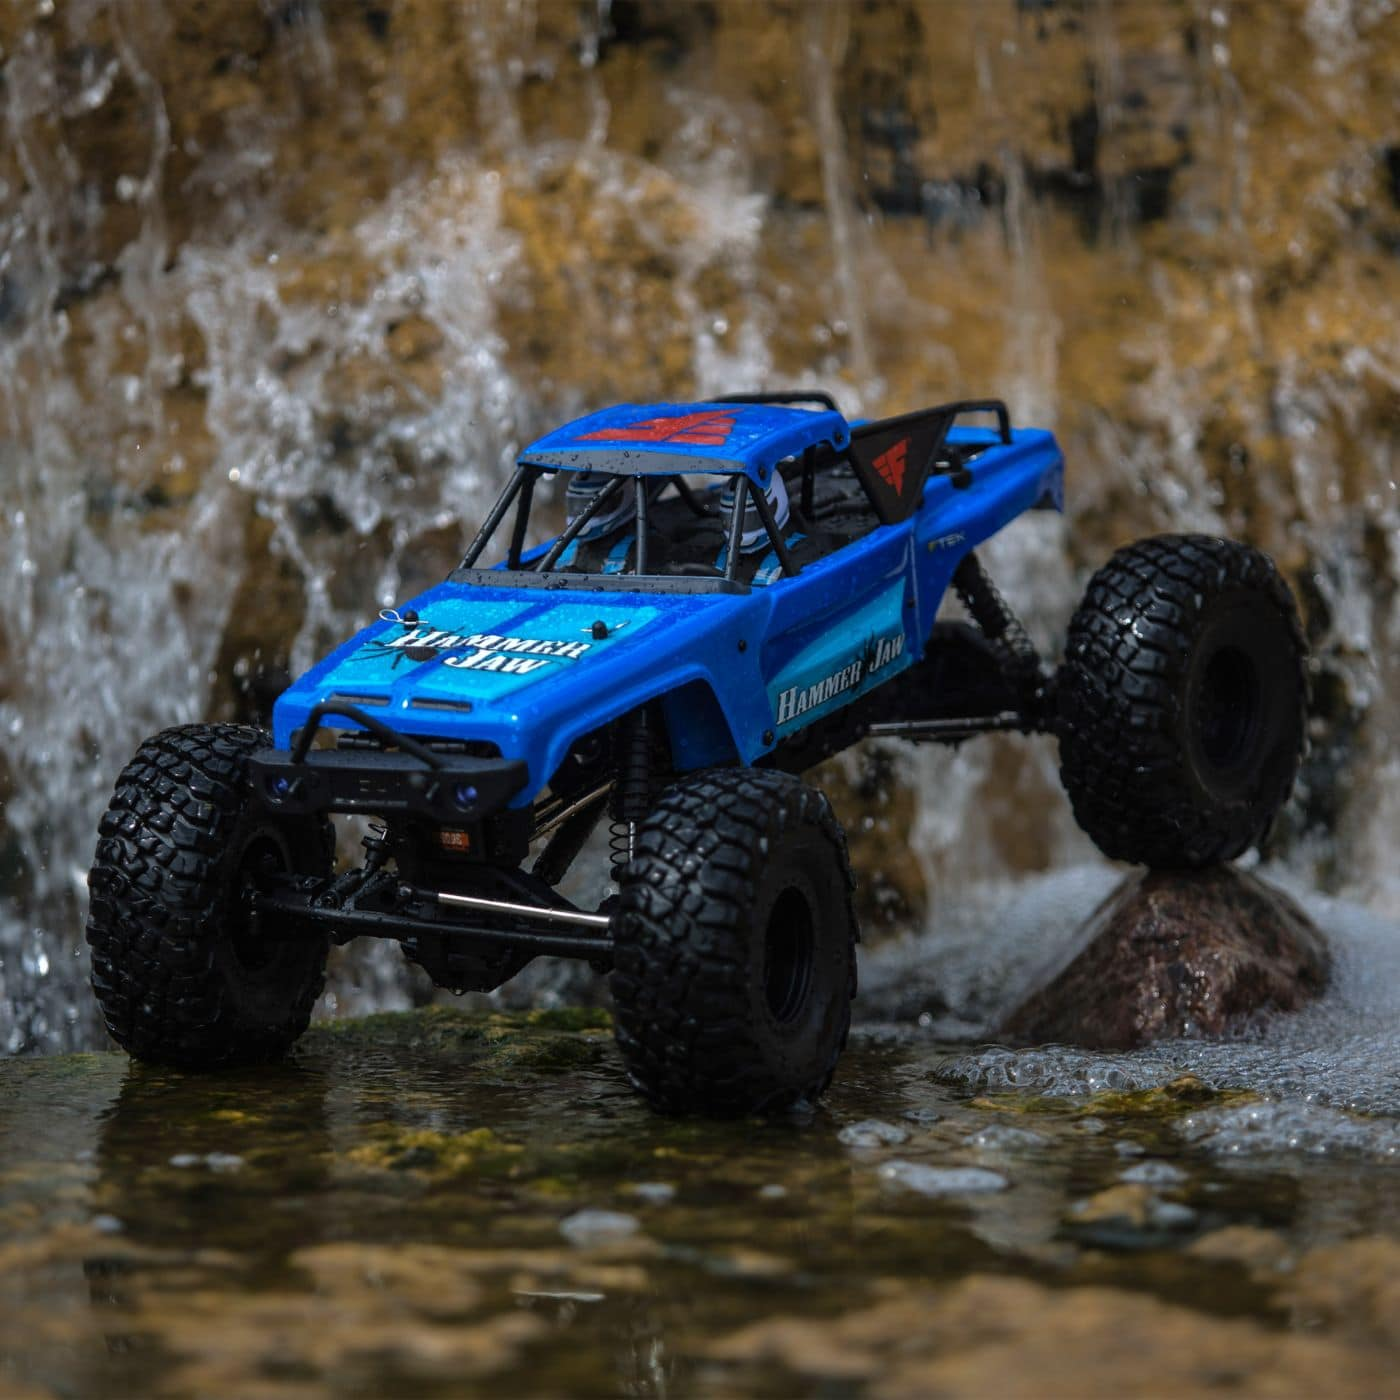 A Deep Discount on the Force RC Hammerjaw Rock Crawler